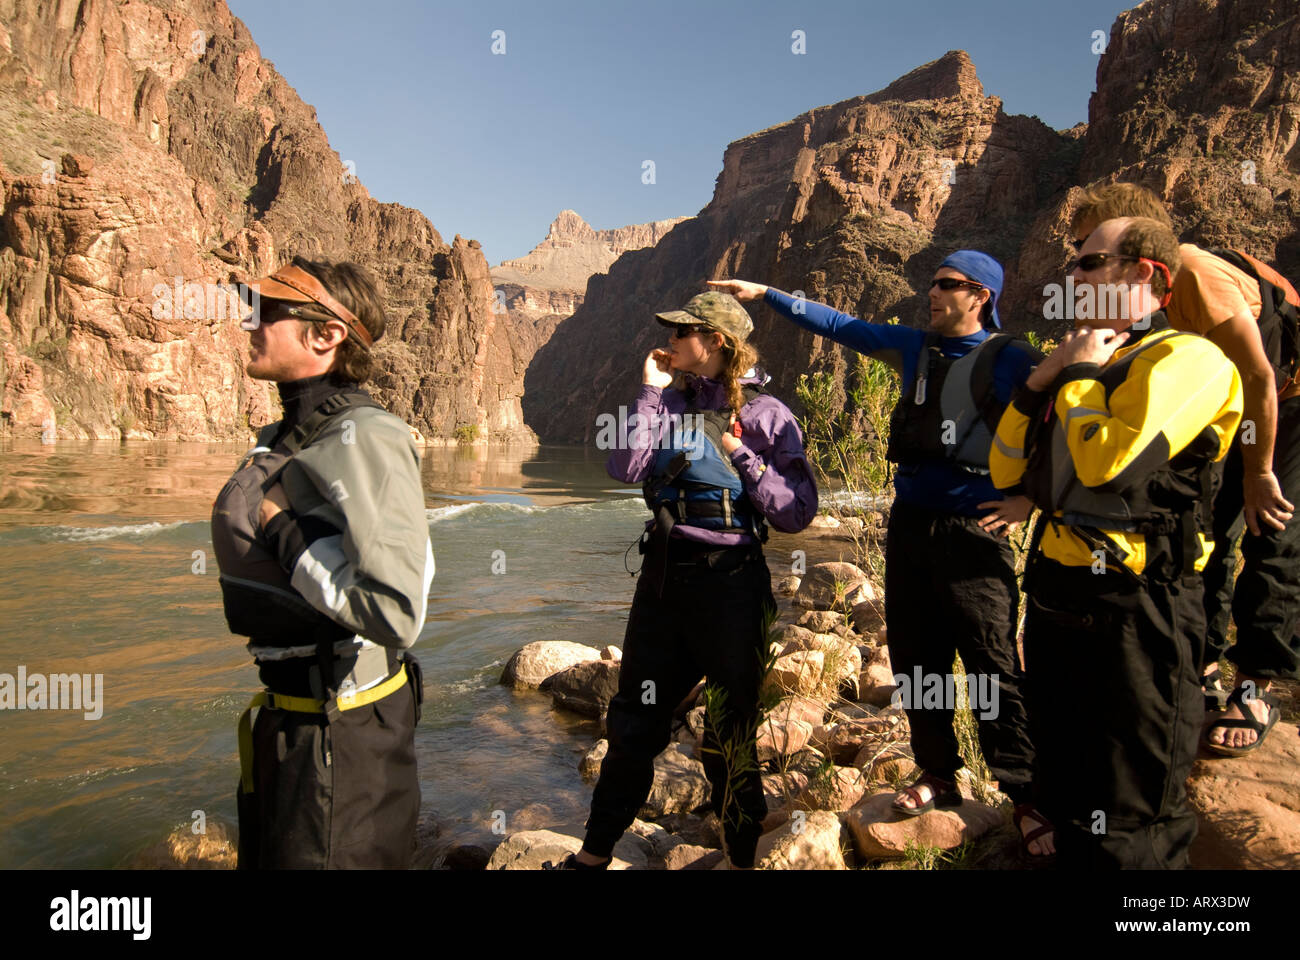 Scouting Granite Rapid on the Colorado River in the Grand Canyon National Park Arizona - Stock Image